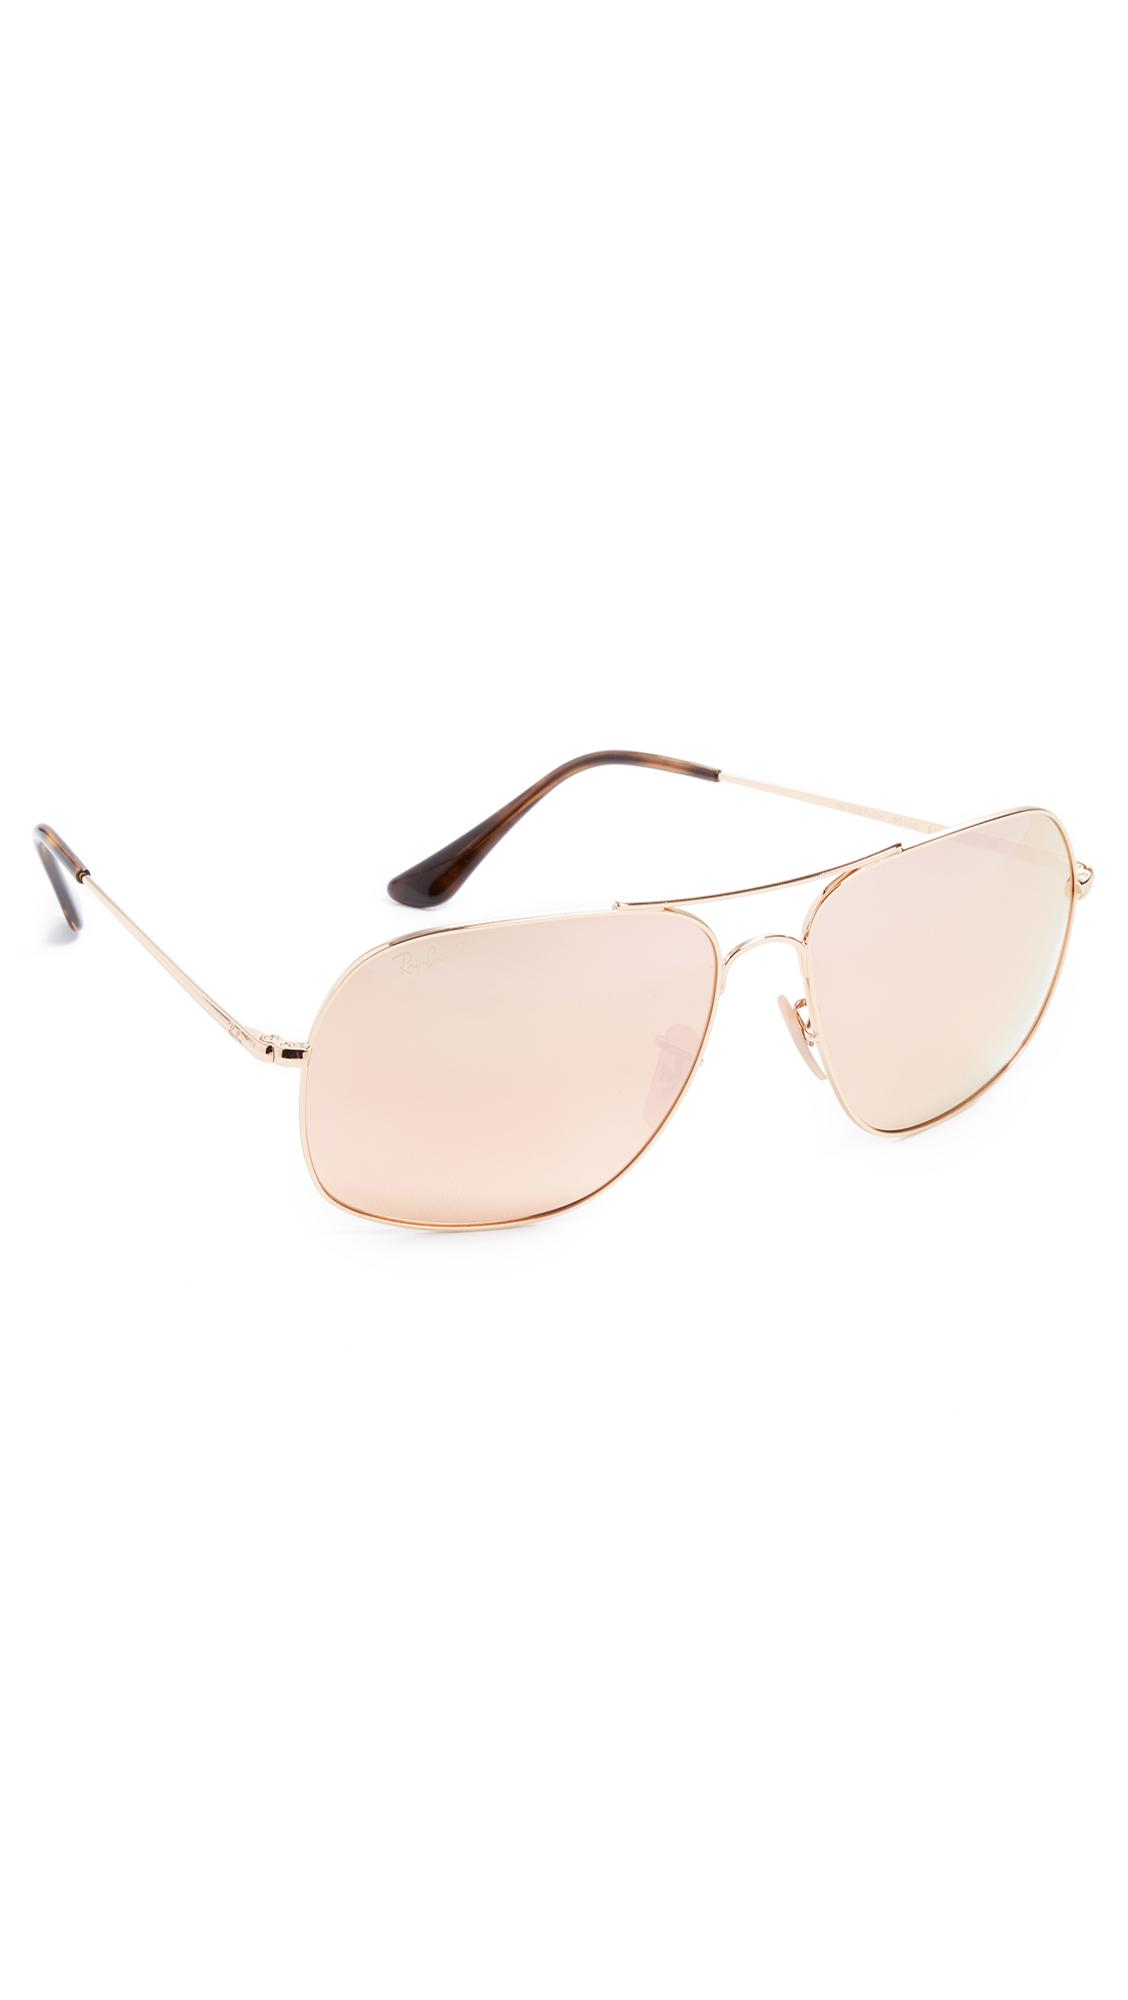 0ca3582ca10 Ray-Ban Rb3587 Chromance Sunglasses in Pink for Men - Lyst